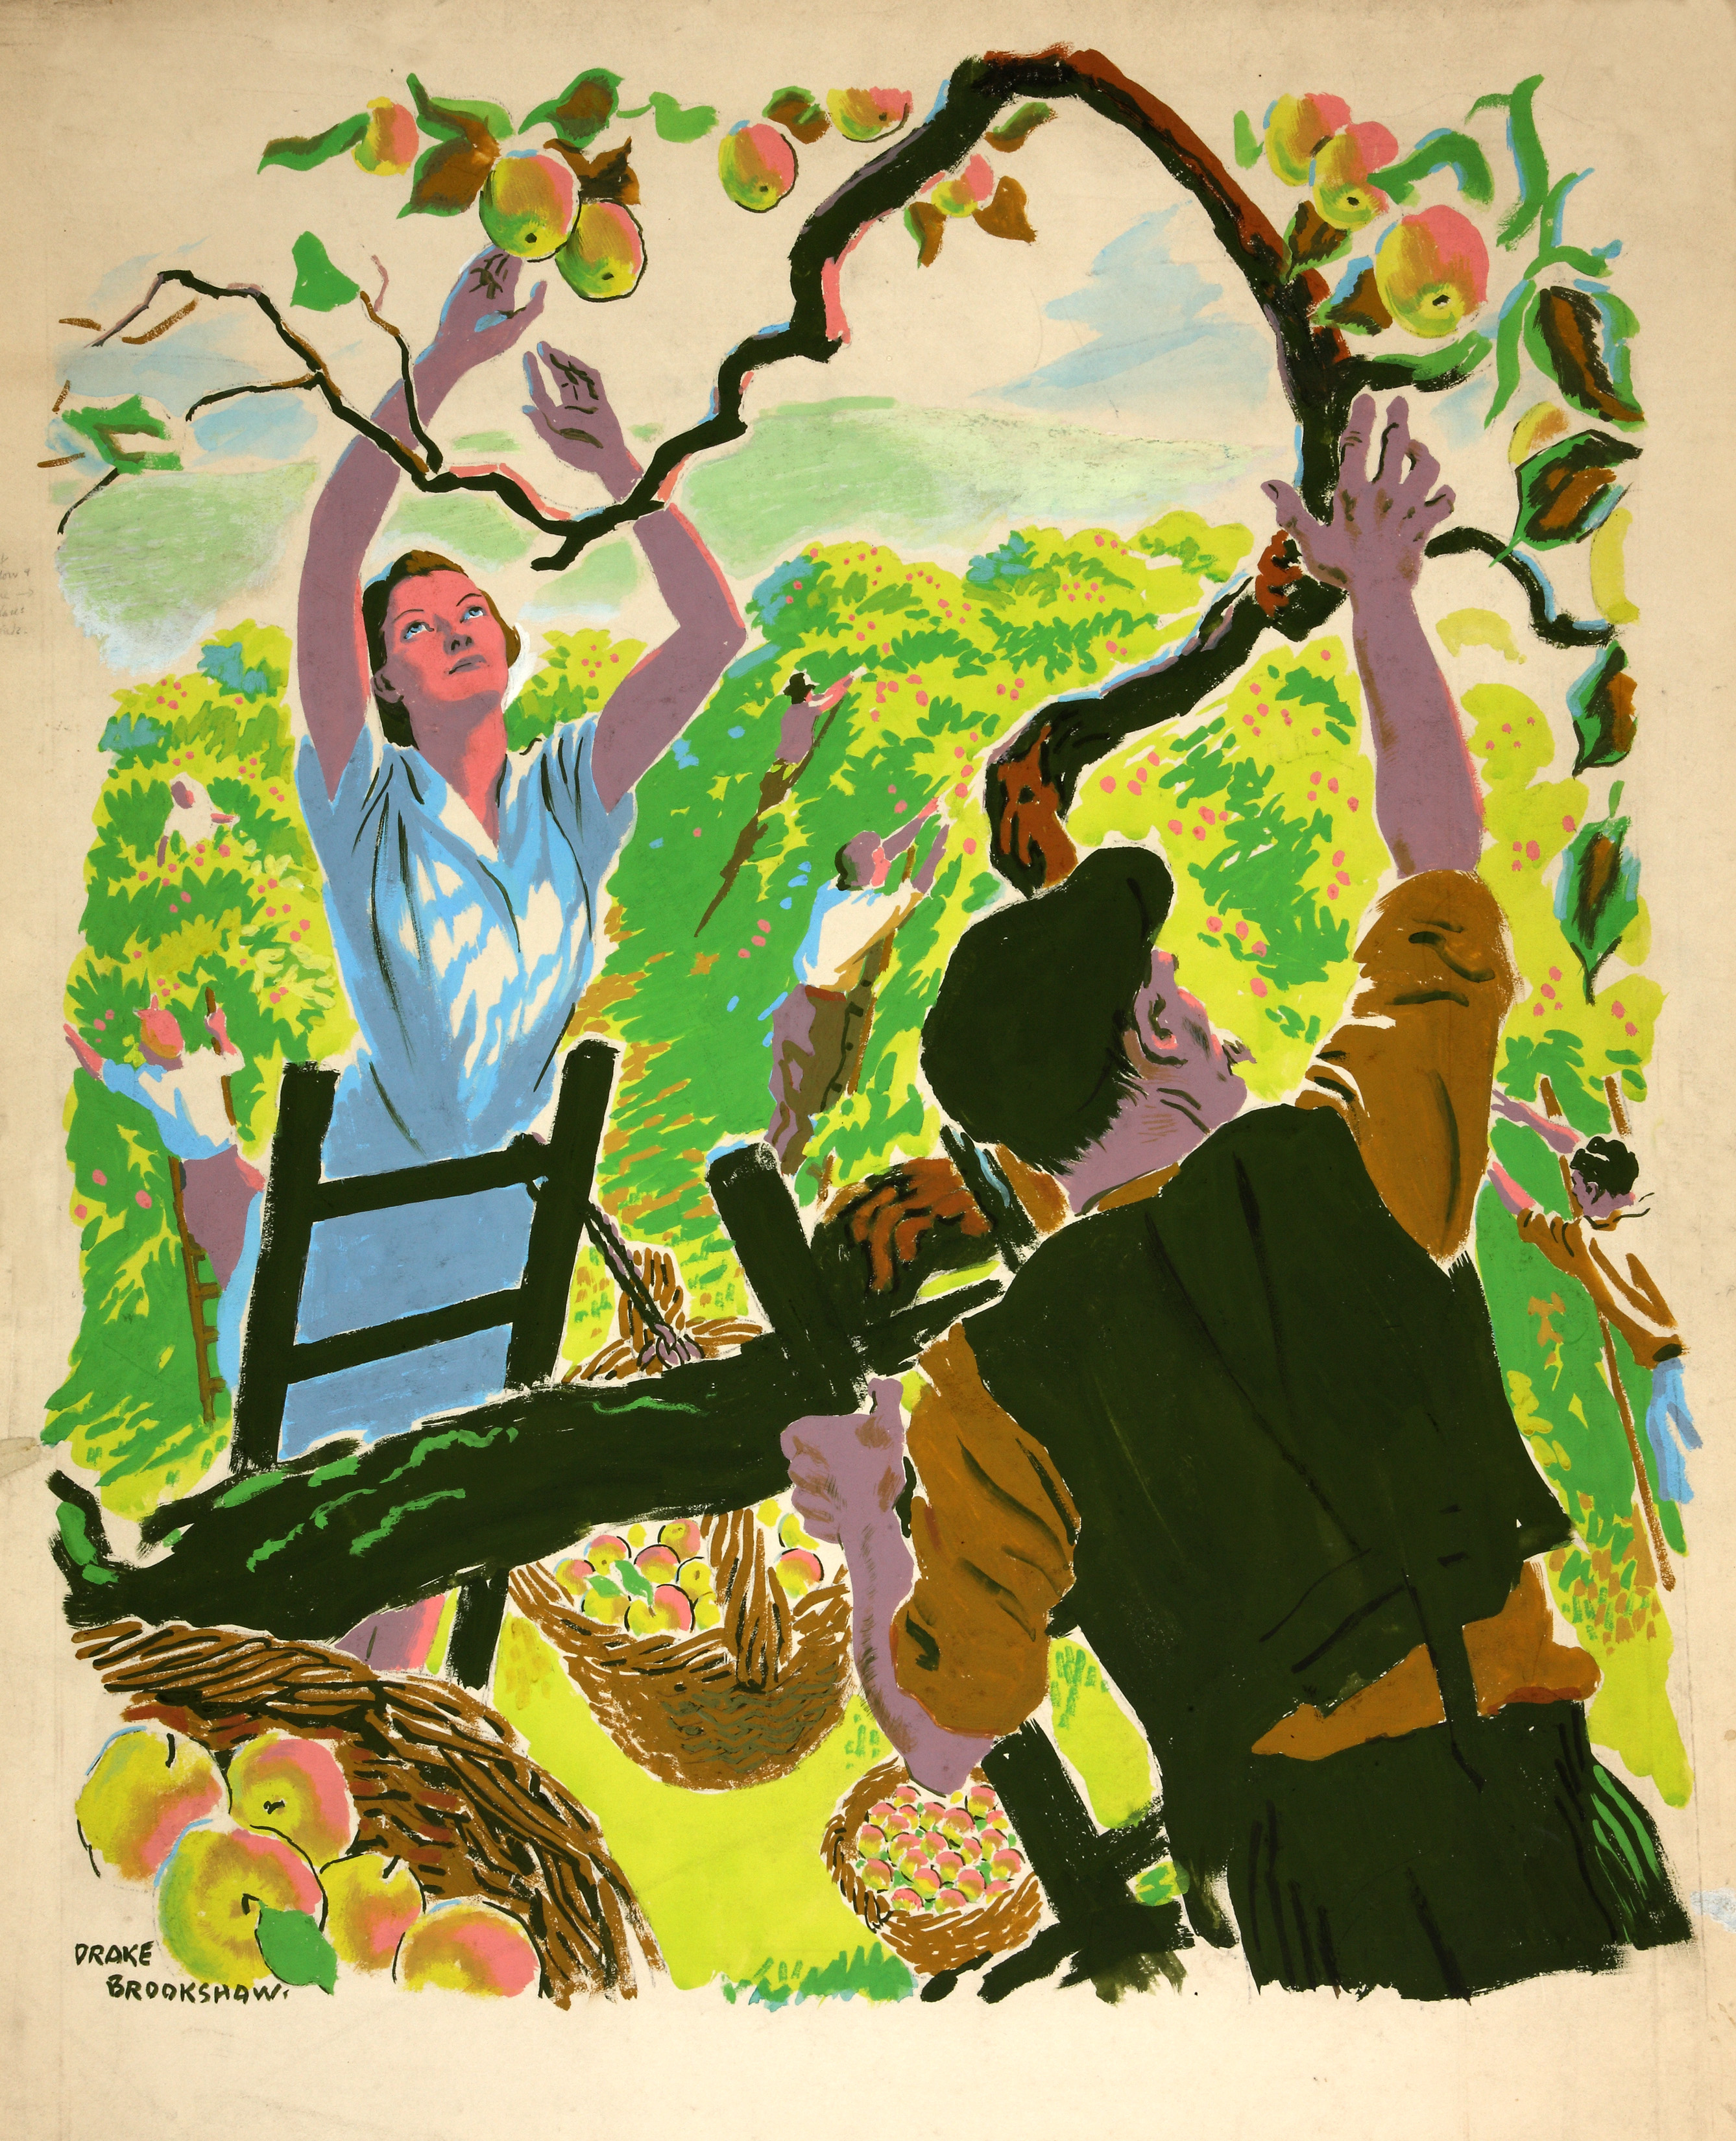 duff nonsense the art of war  file inf3 109 food production apple picking artist drake brookshaw jpg